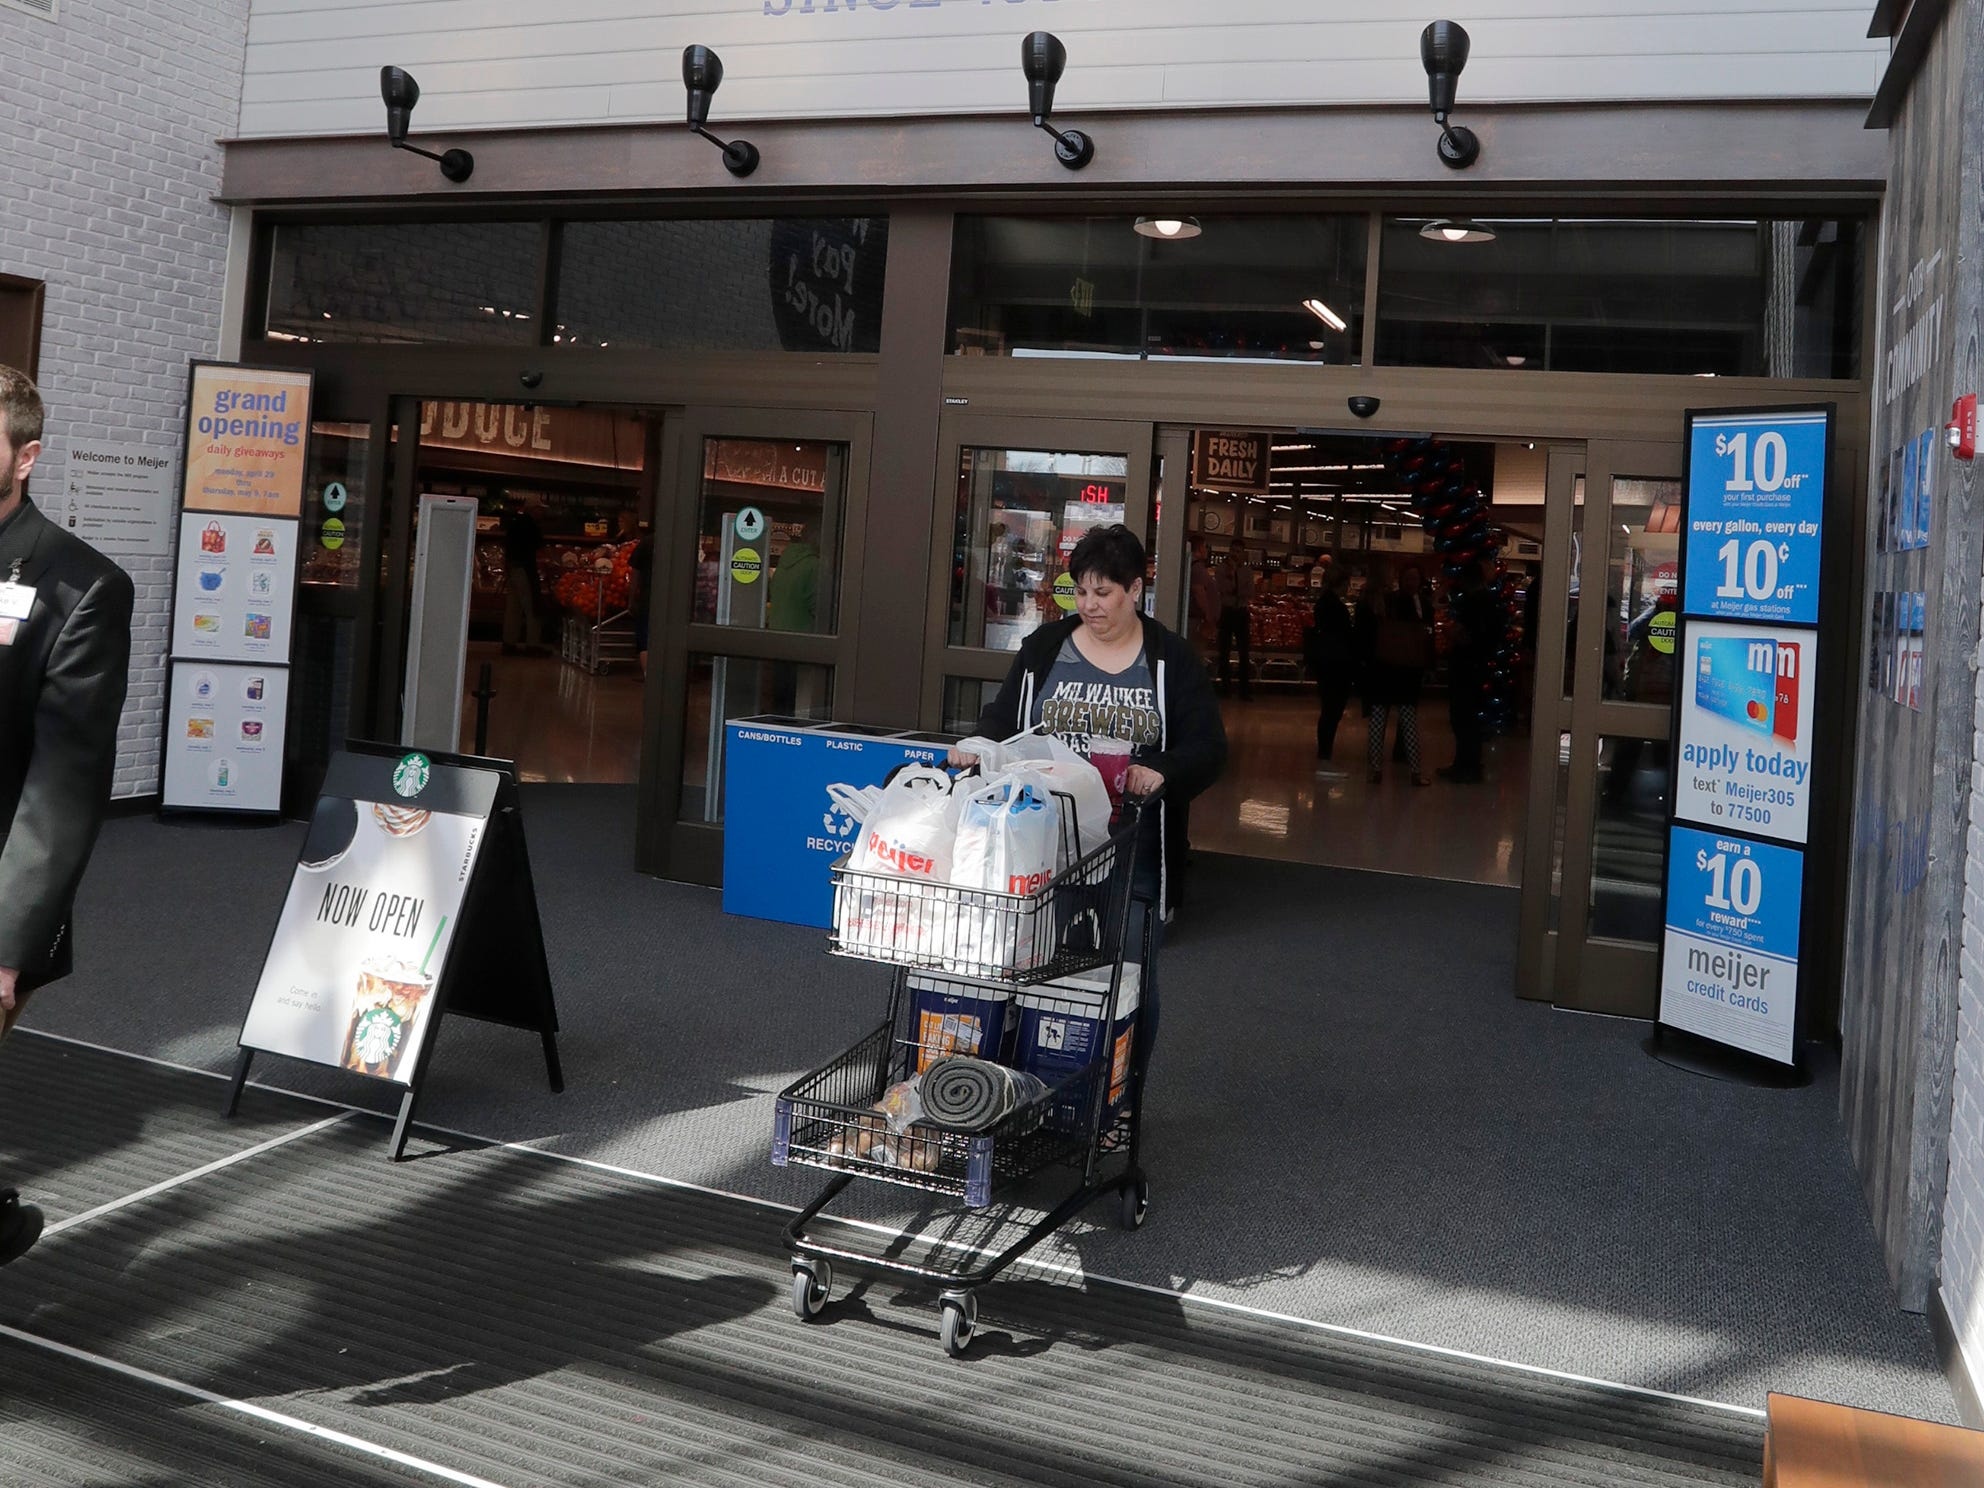 Customers exit the entrance at Meijer, Thursday April 25, 2019, in Sheboygan, Wis. The 155,000-square-foot supercenter has 300 employees on opening day.